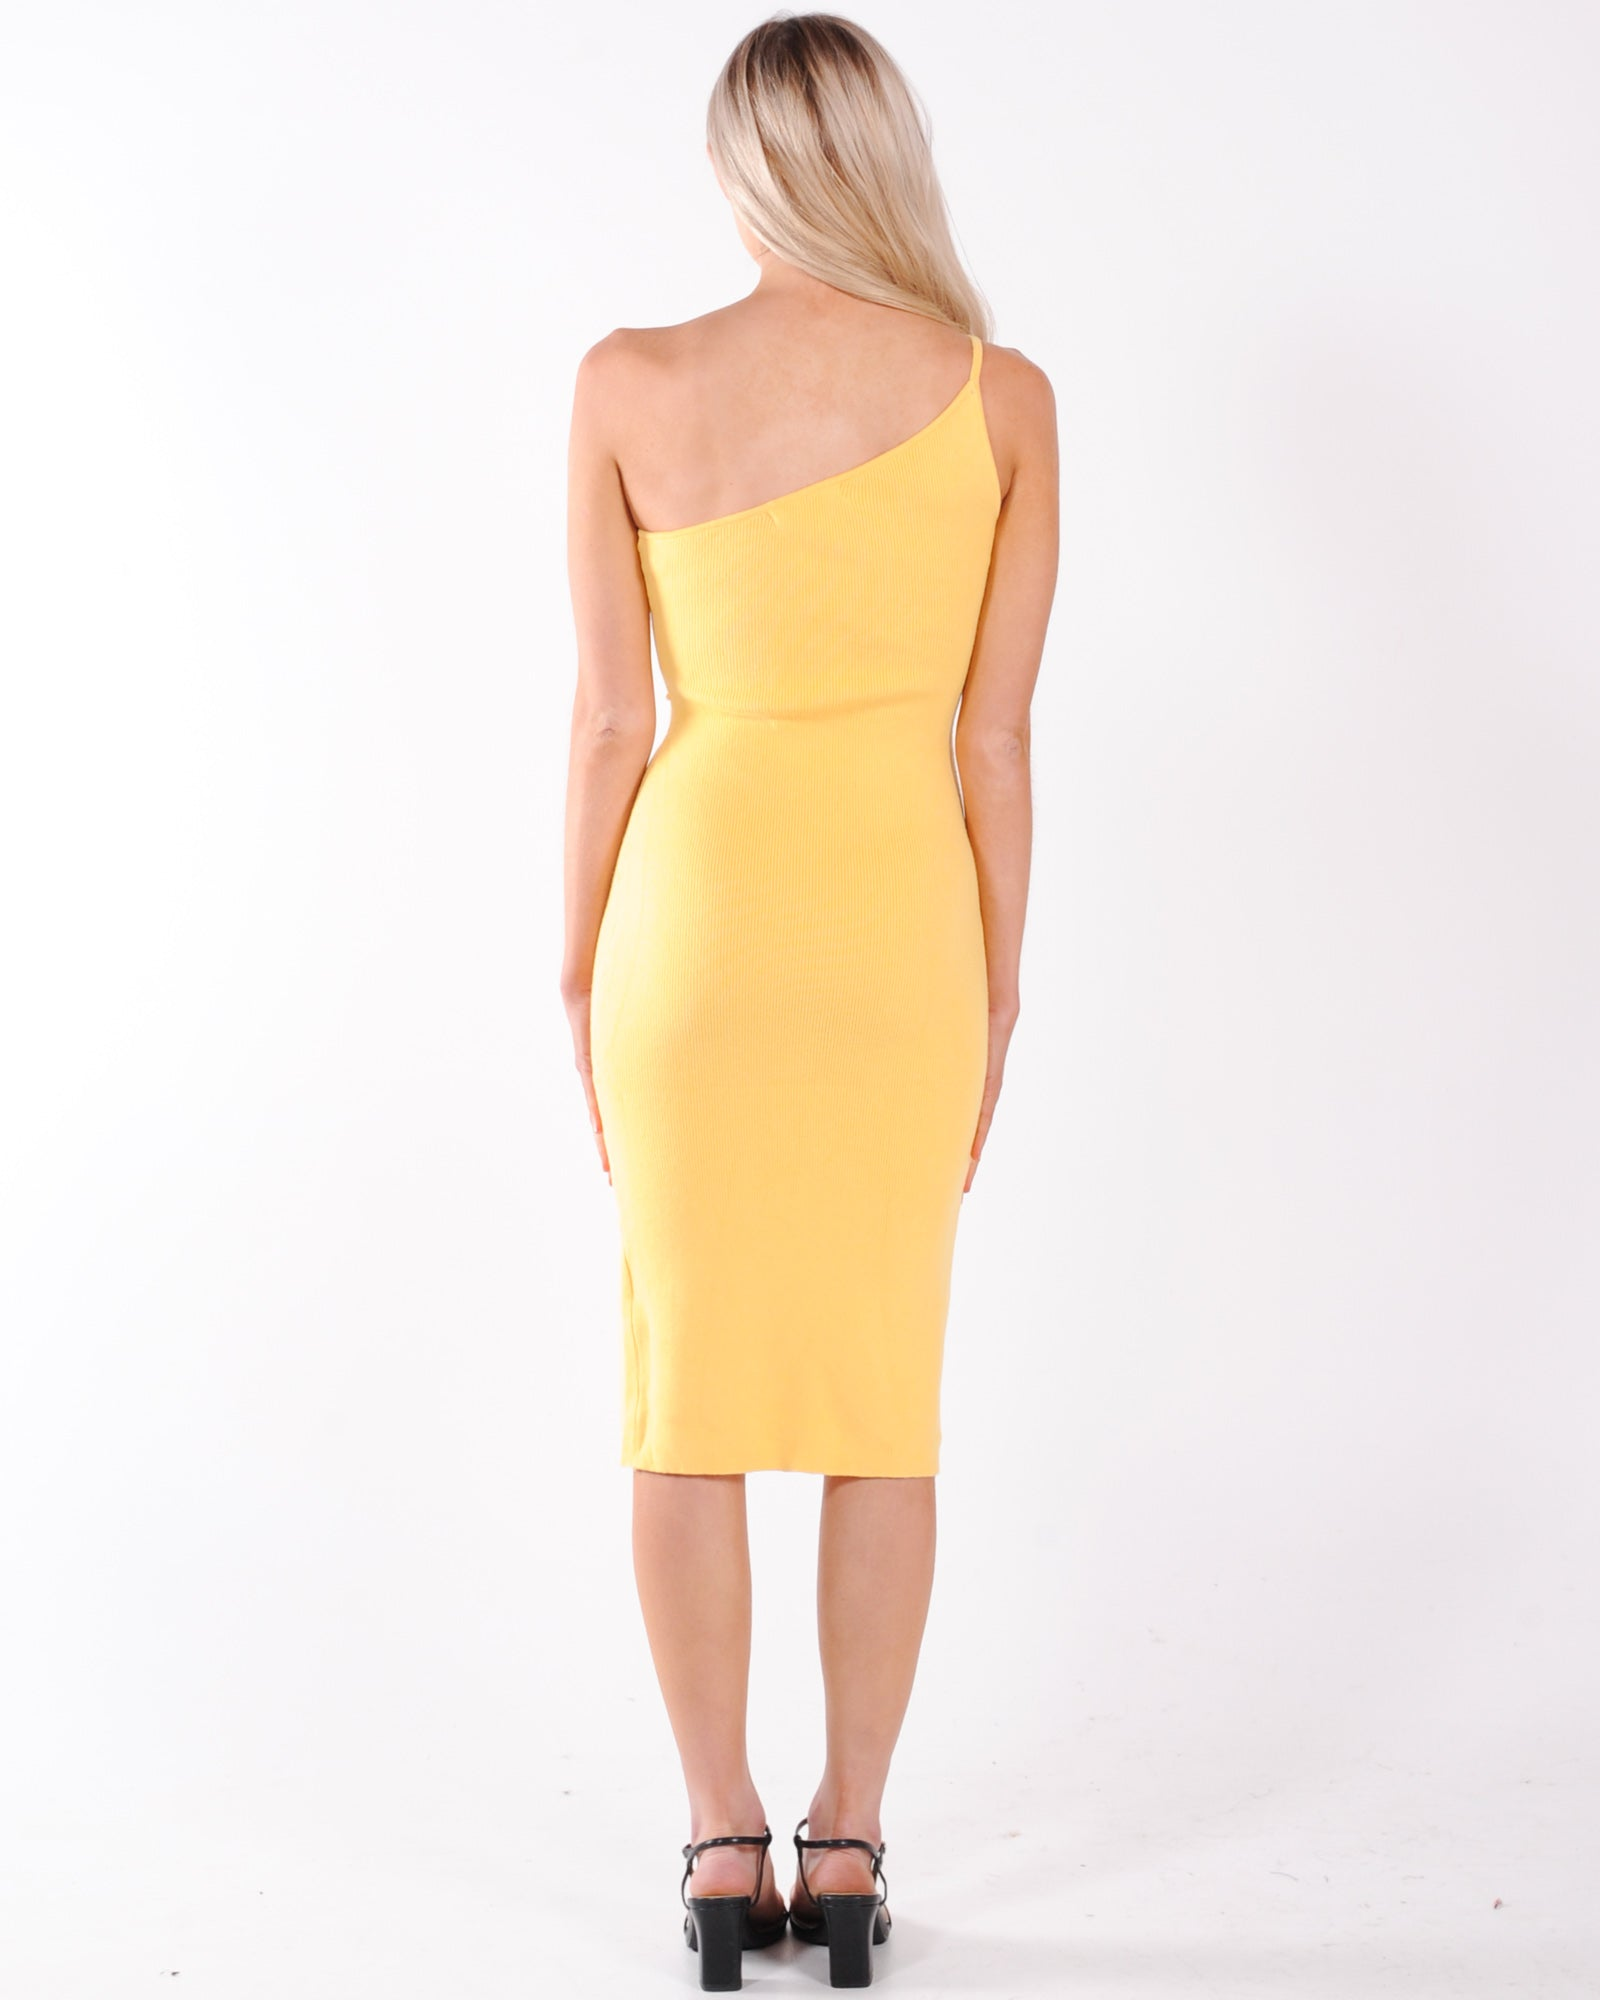 Eyes On You Knit Dress - Yellow